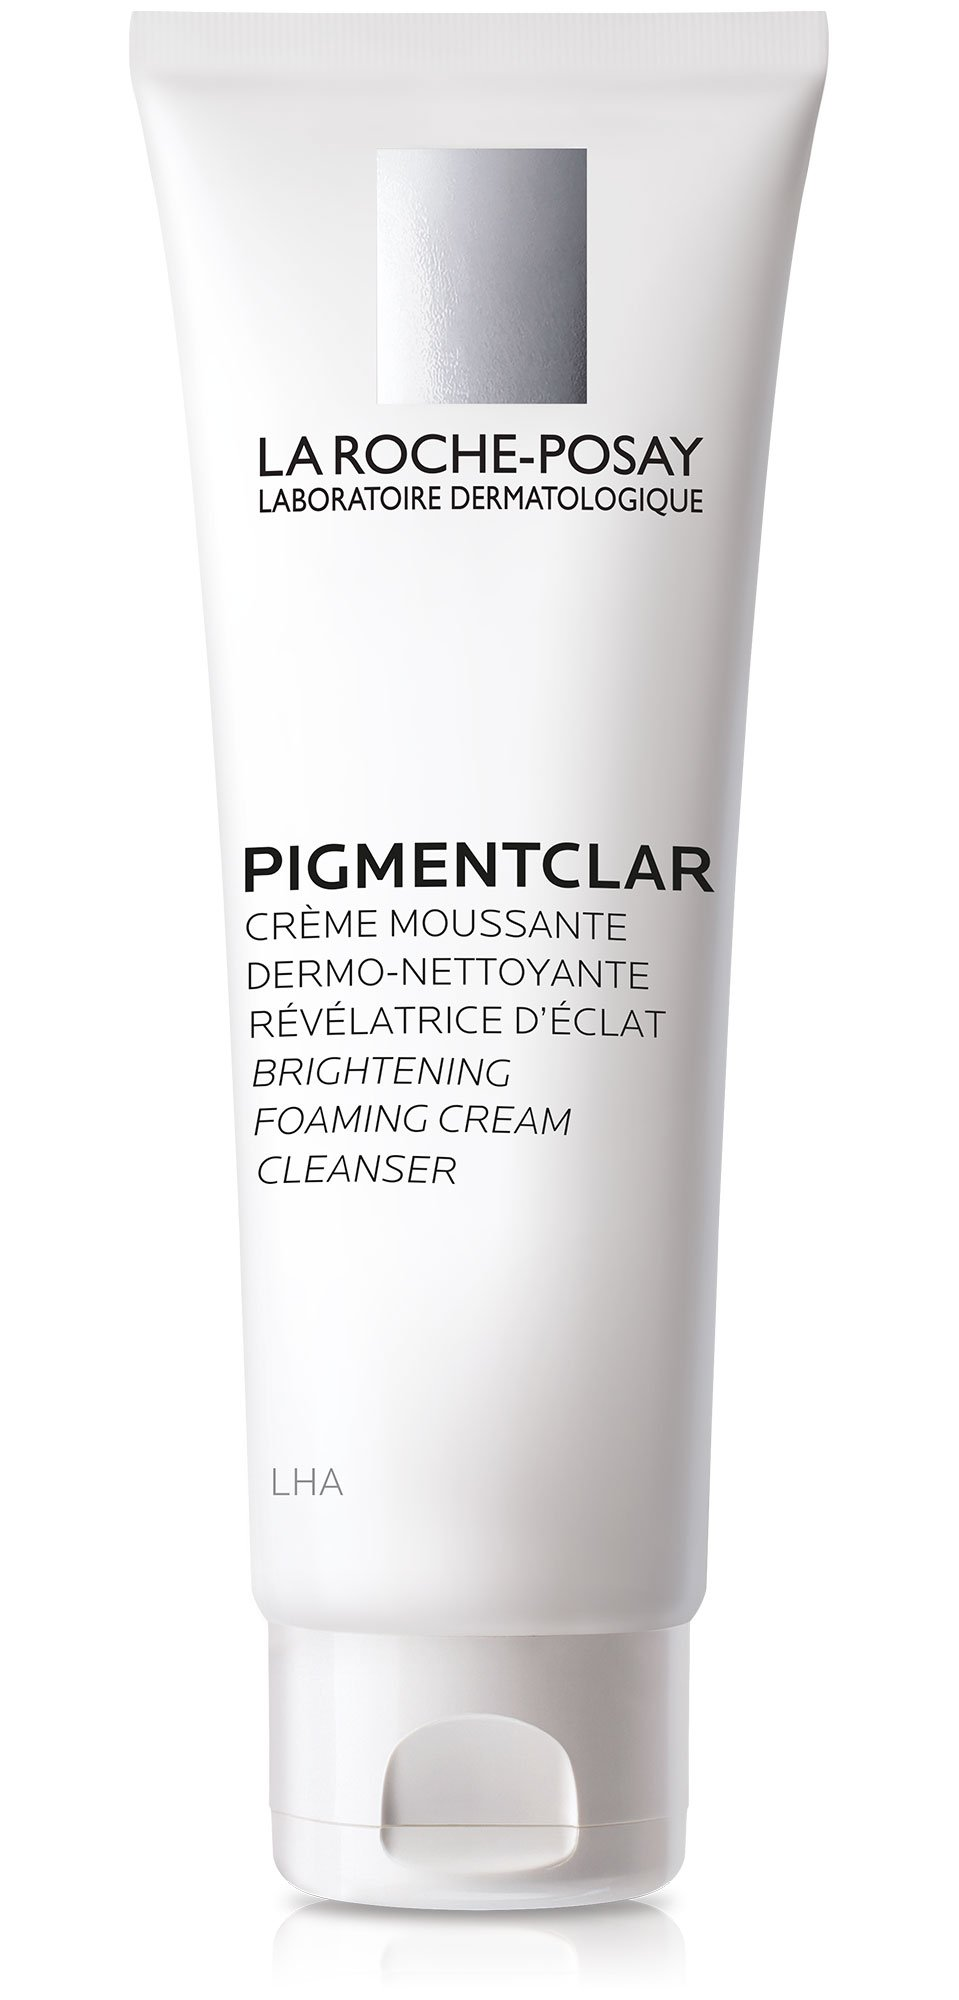 La Roche-Posay Pigmentclar Dark Spot Face Wash Brightening Foaming Cream Facial Cleanser with LHA, 4.2 Fl. Oz.